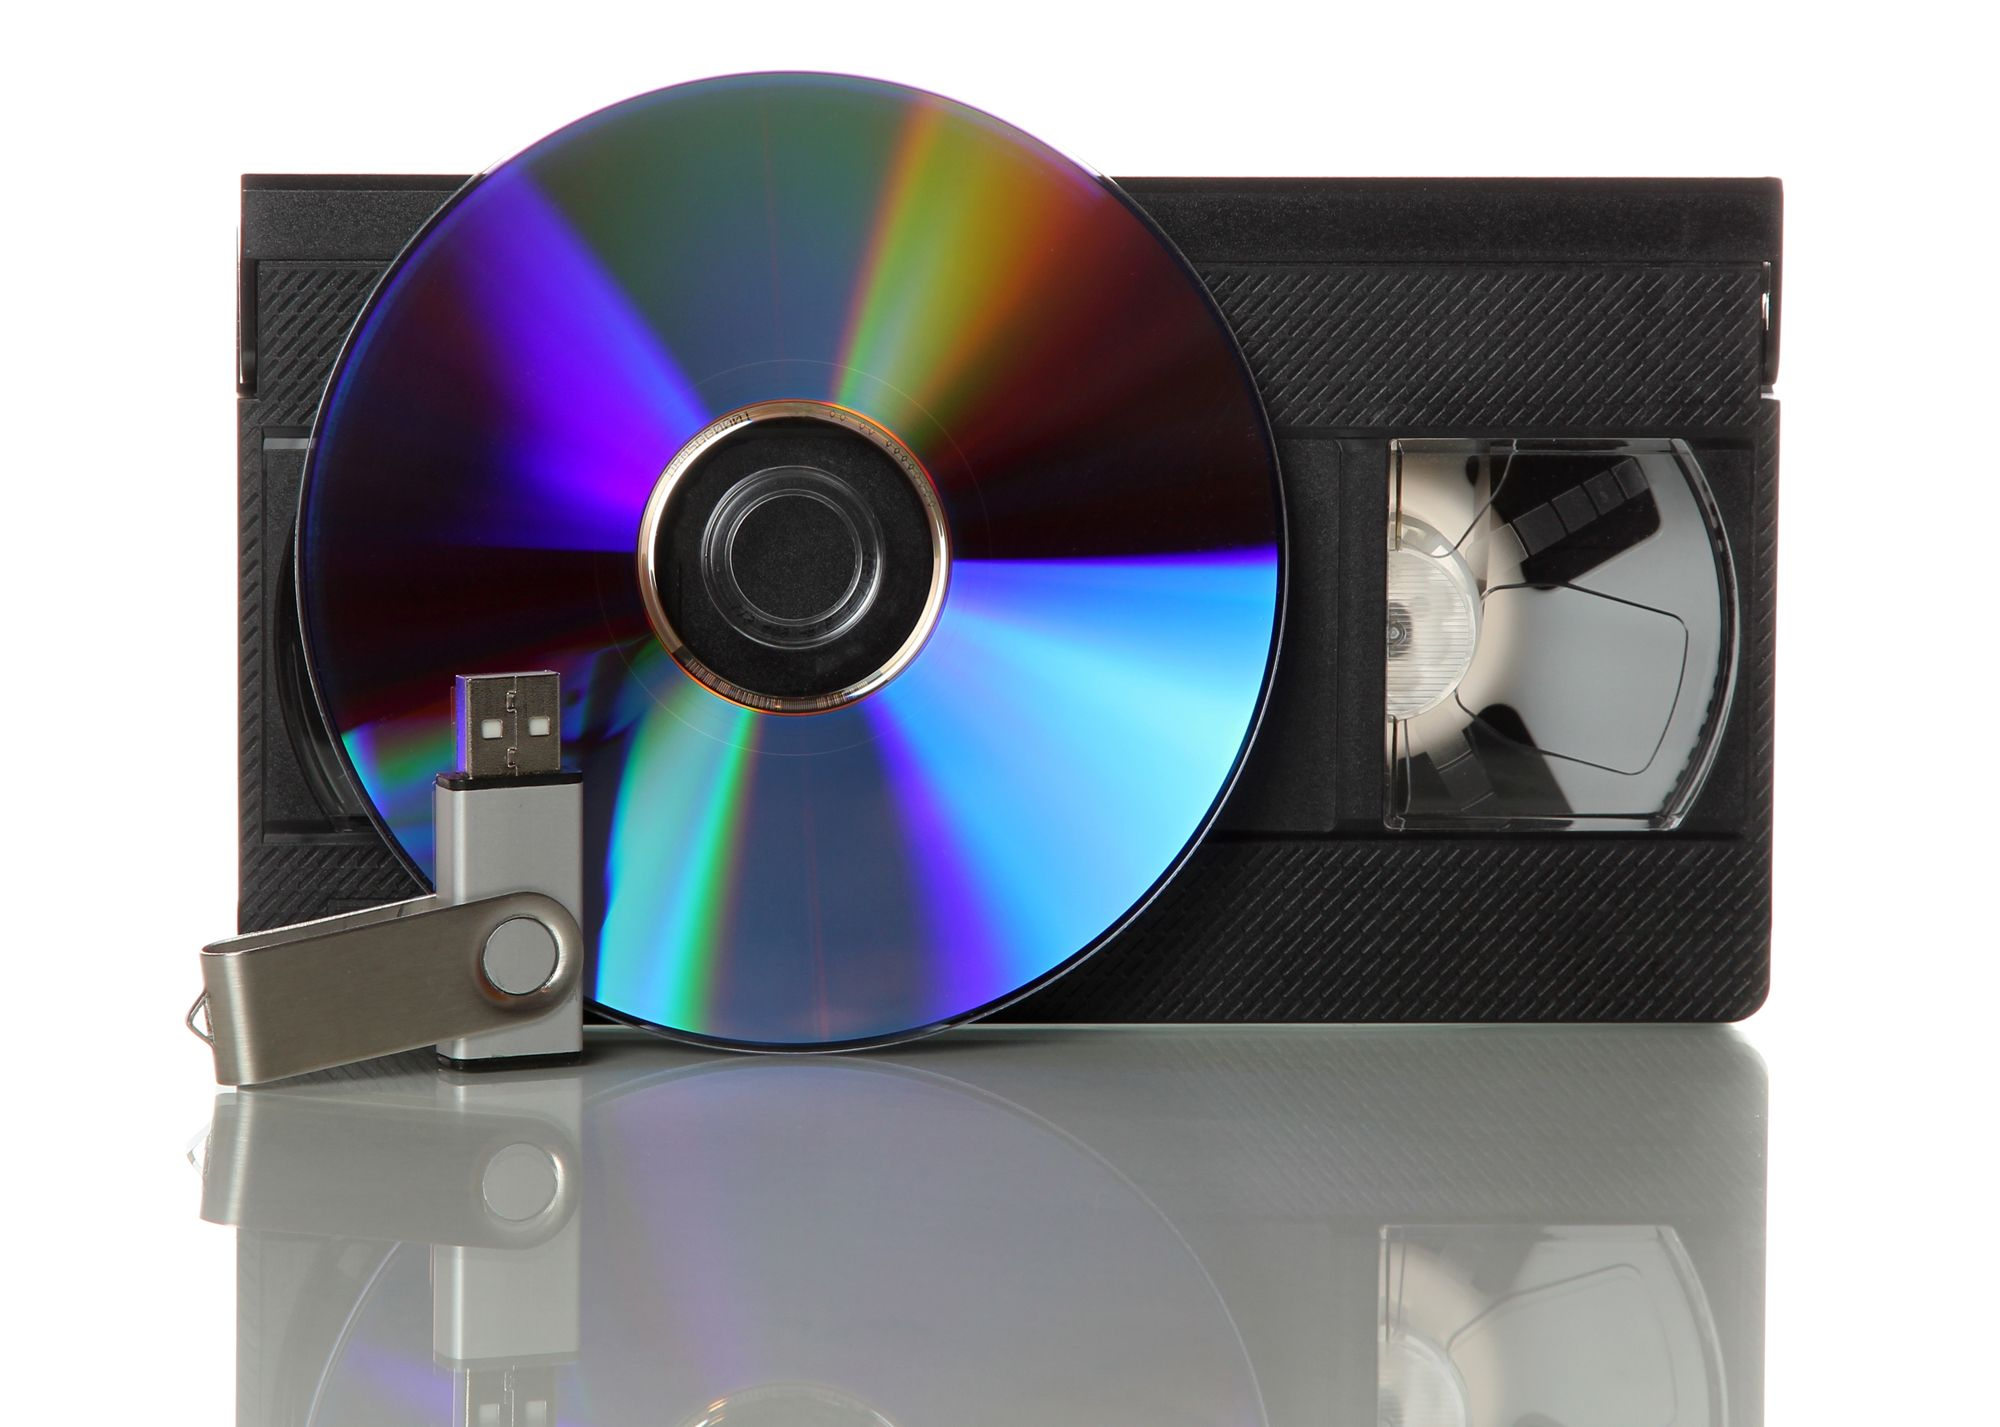 Vhs To Dvd Conversion Minneapolis Video Conversion Service Mn Vhs To Dvd Scanning Photos 8mm Film